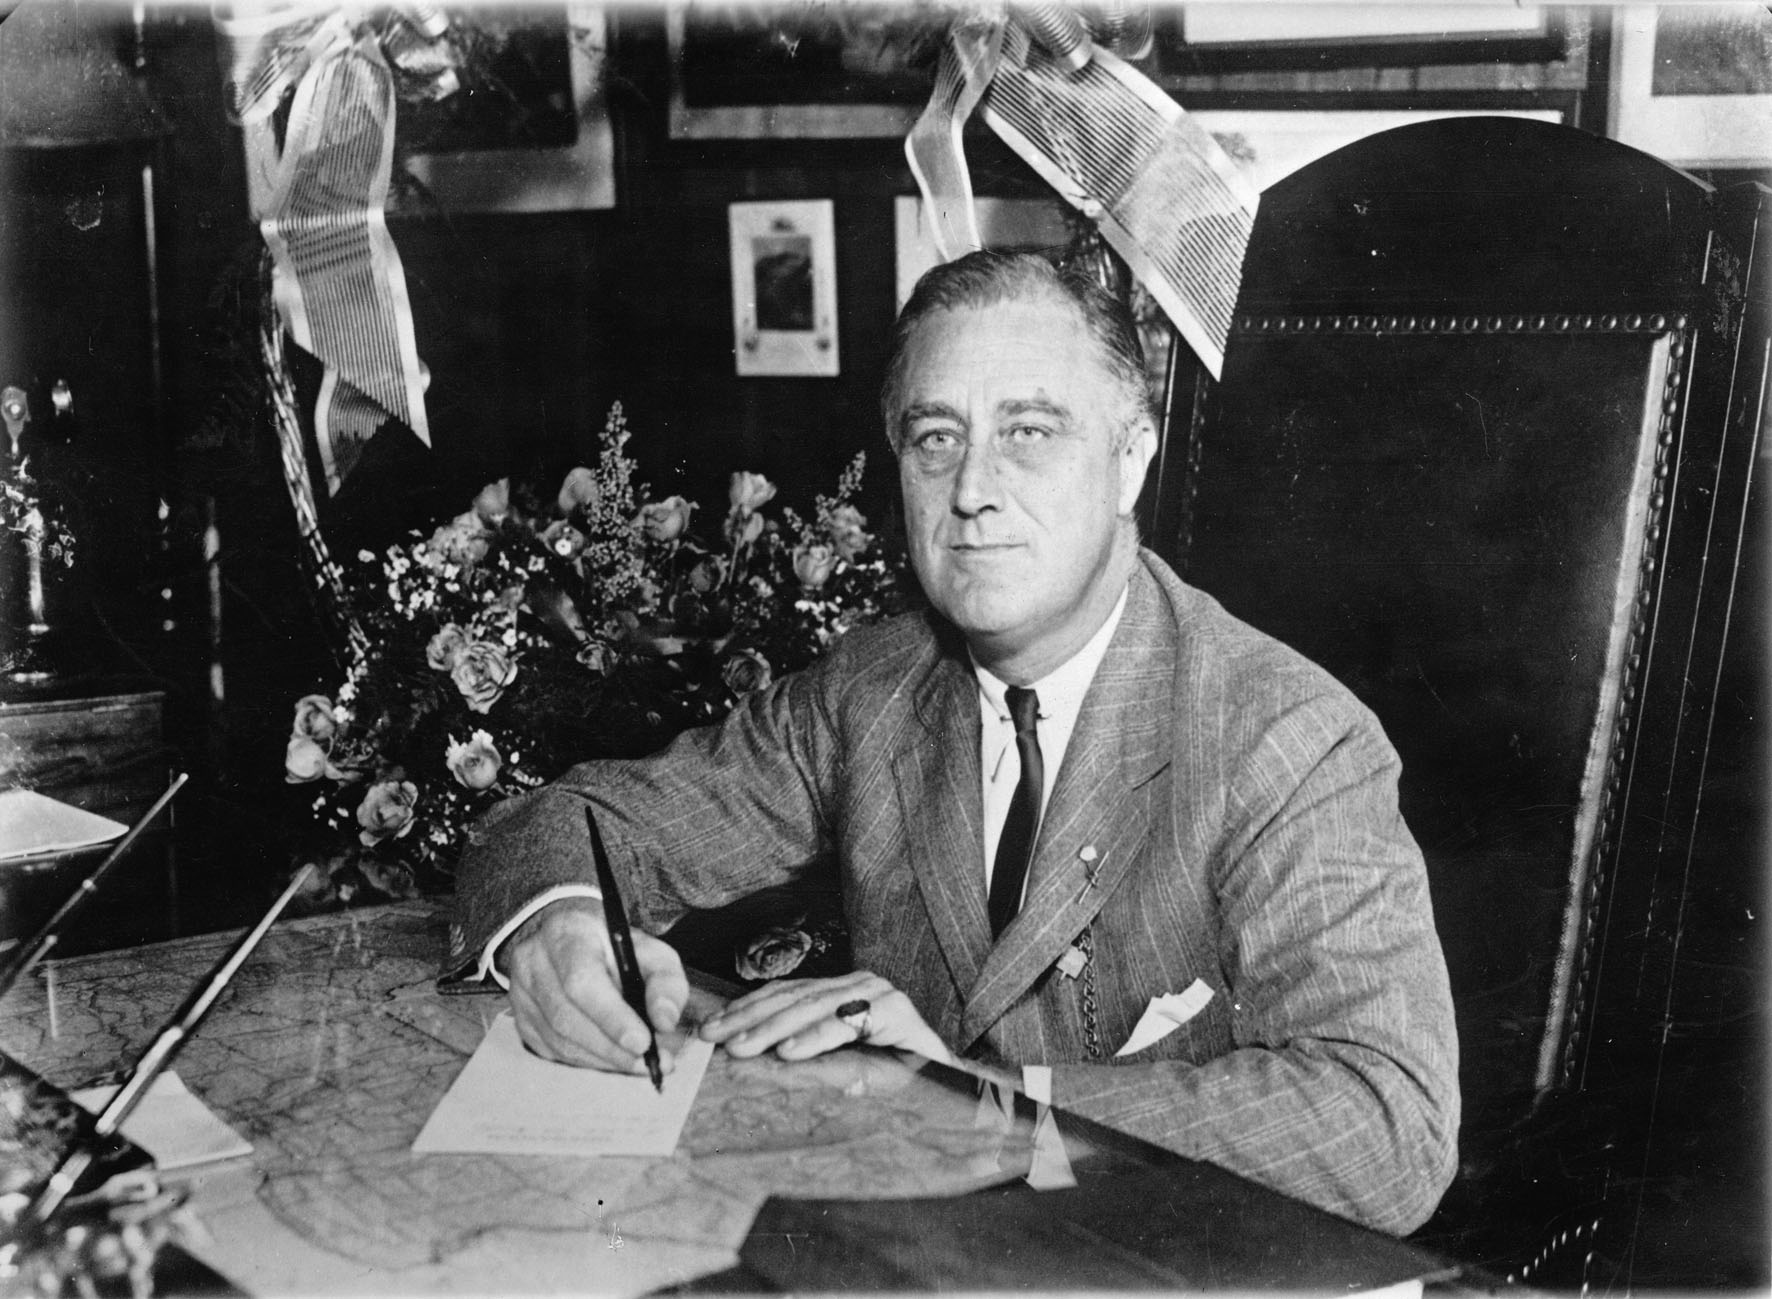 Frankl D. Roosevelt;  president of the United States of America. Photograph. November 9th 1932. (Photo by Imagno/Getty Images) Franklin D. Roosevelt; PrŠsident der USA. Photographie. 9.11.1932.